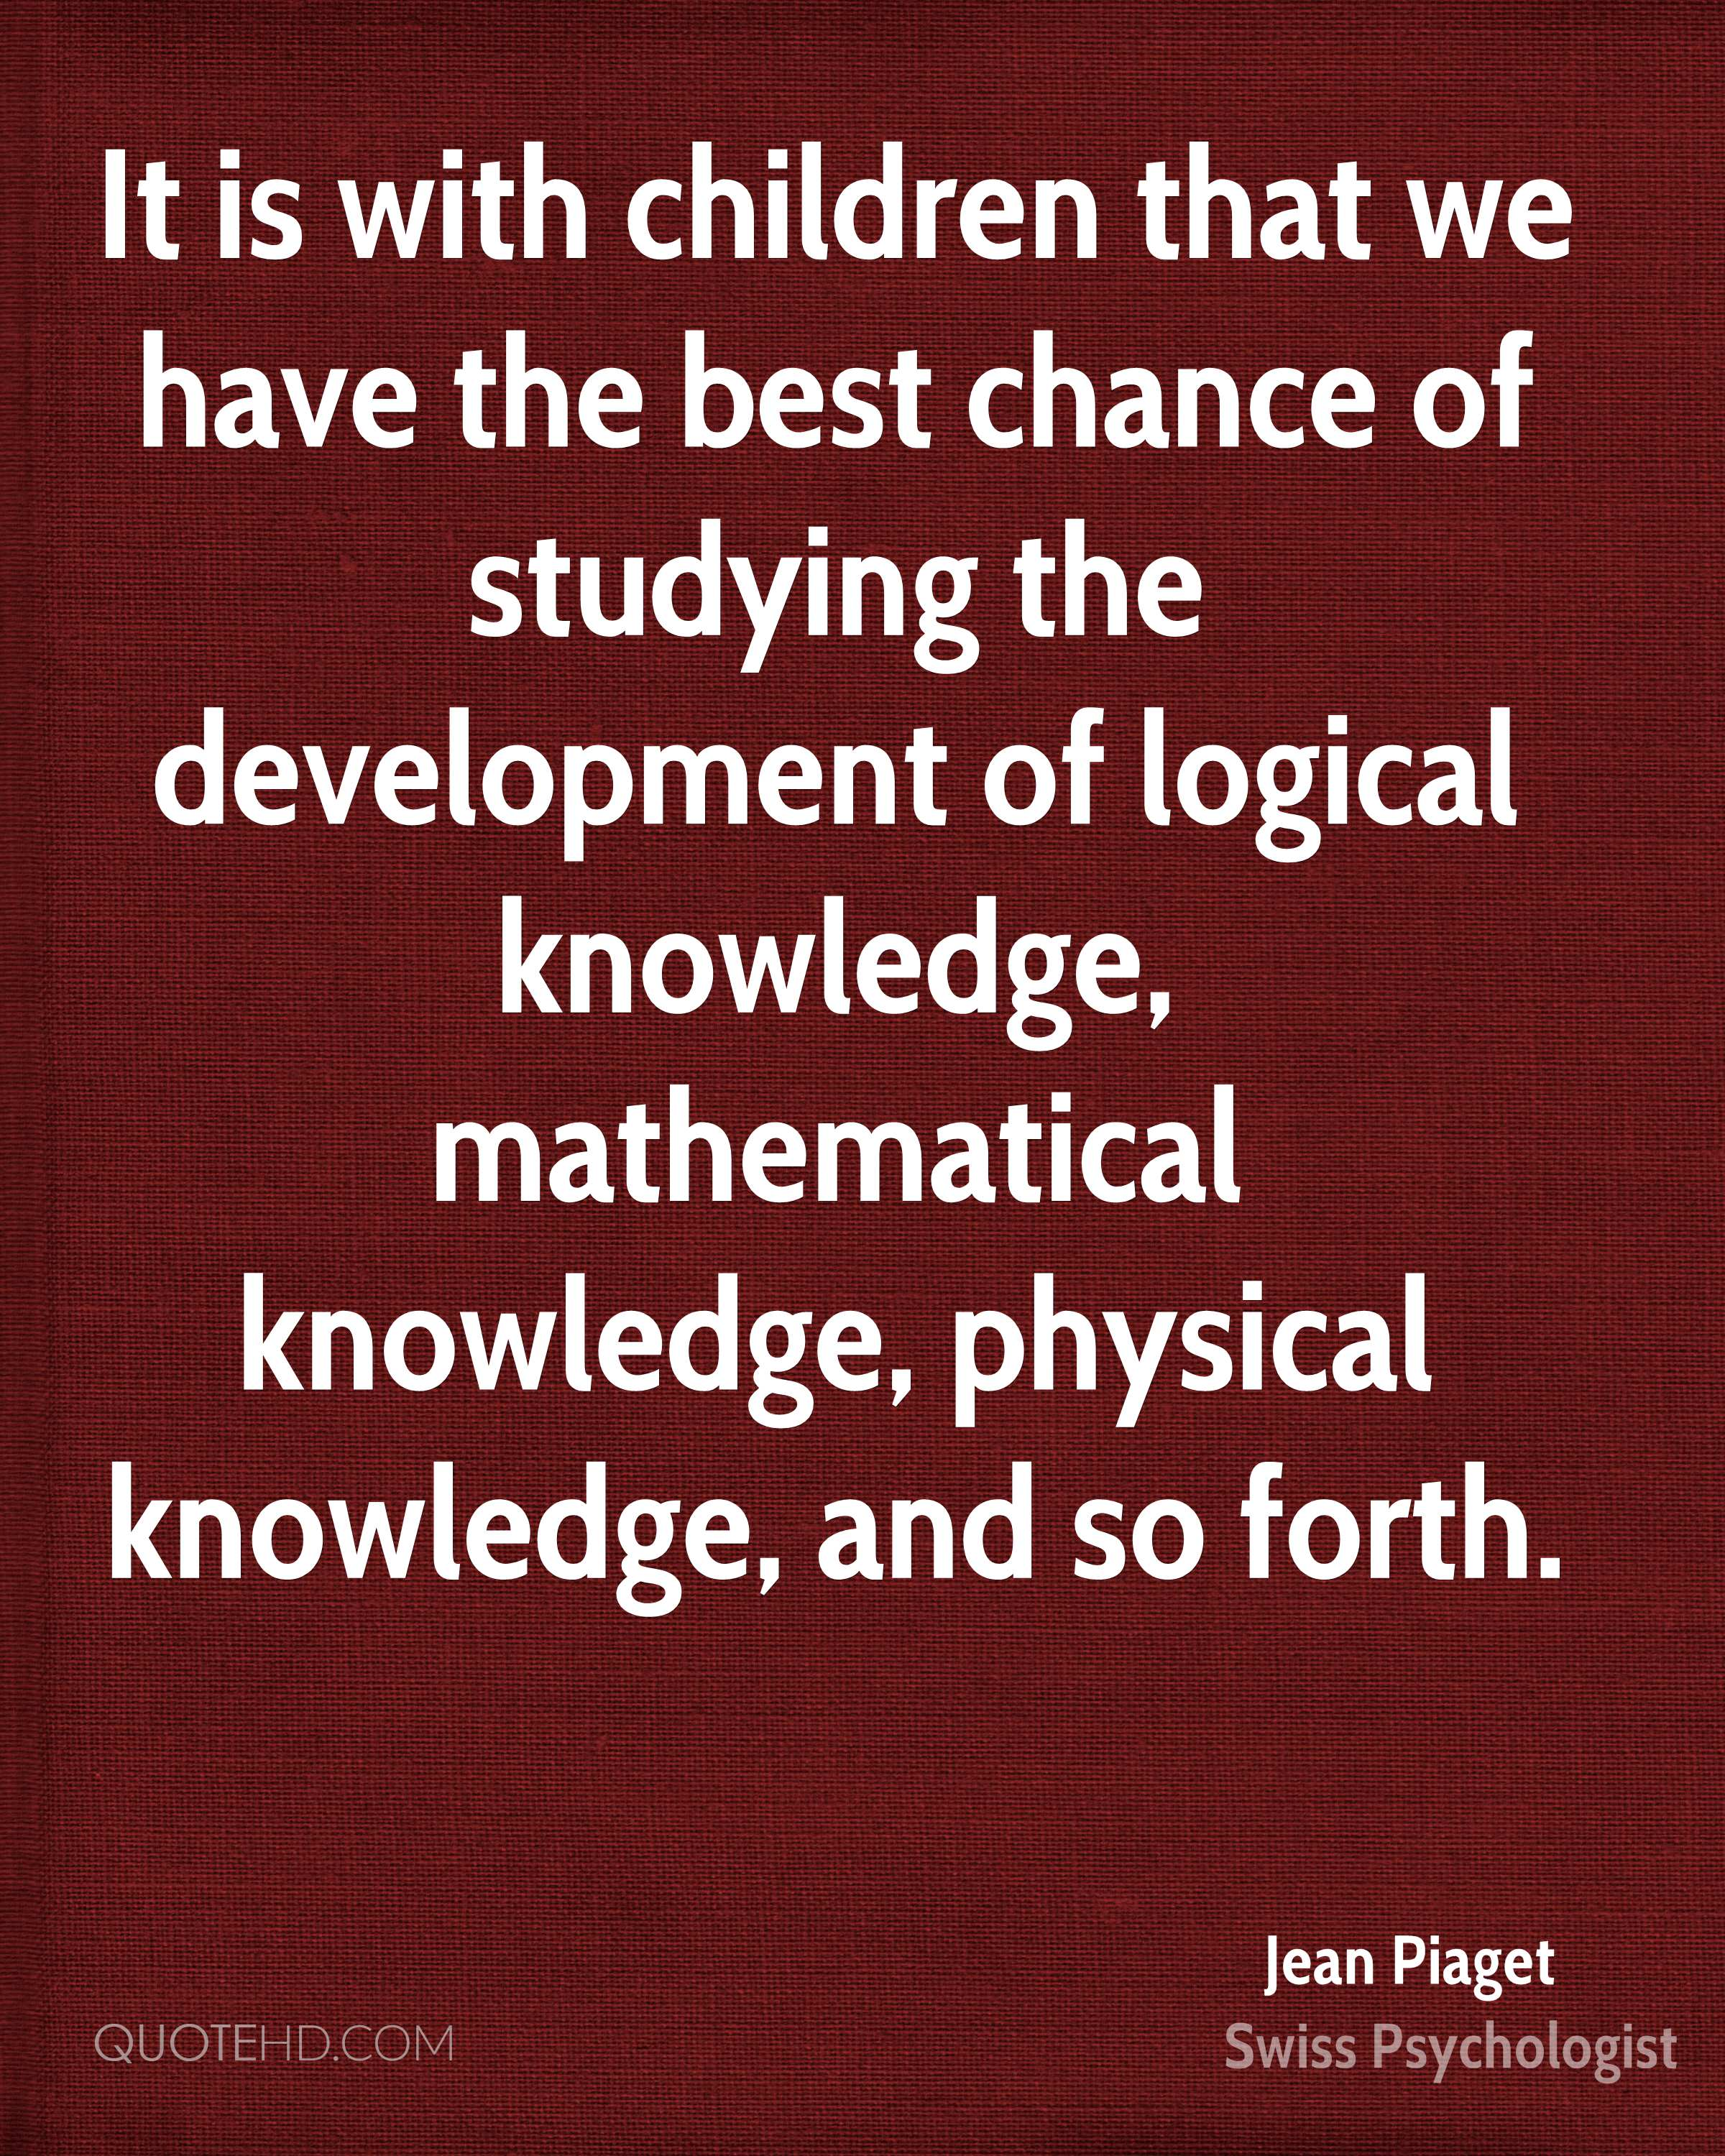 It is with children that we have the best chance of studying the development of logical knowledge, mathematical knowledge, physical knowledge, and so forth.